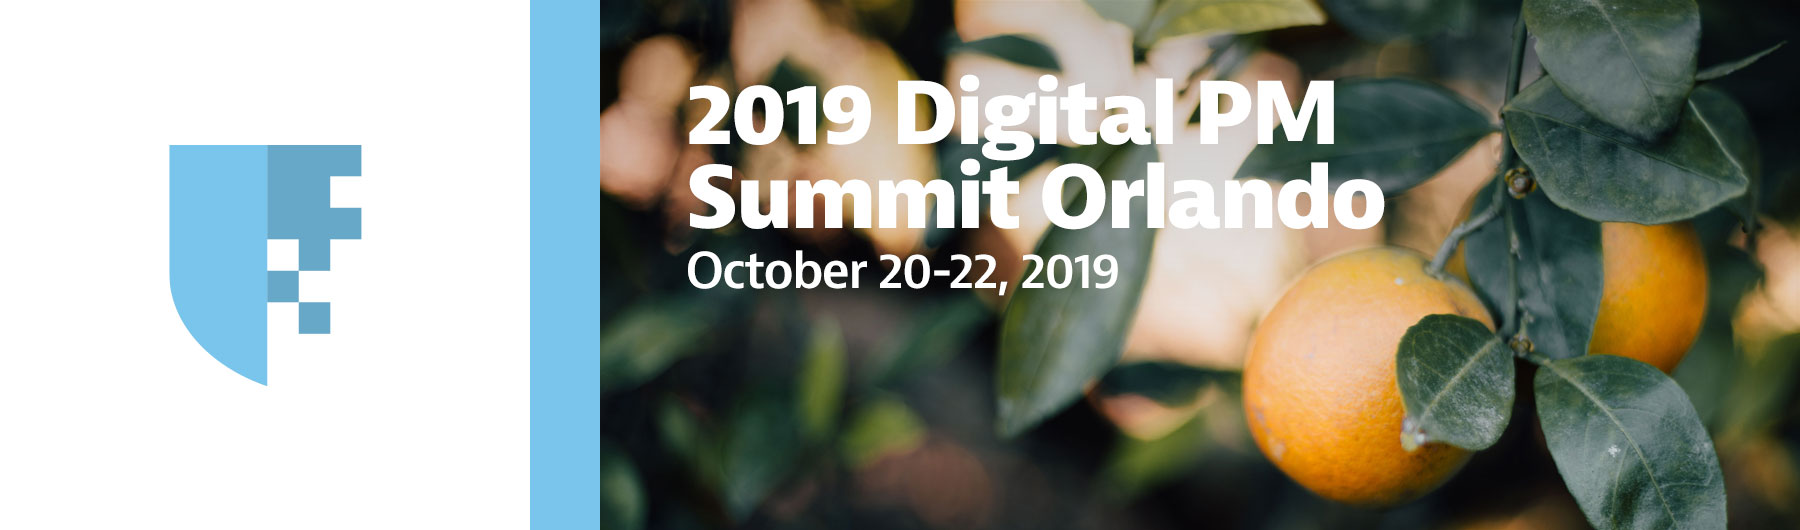 Digital PM Summit 2019 | Orlando